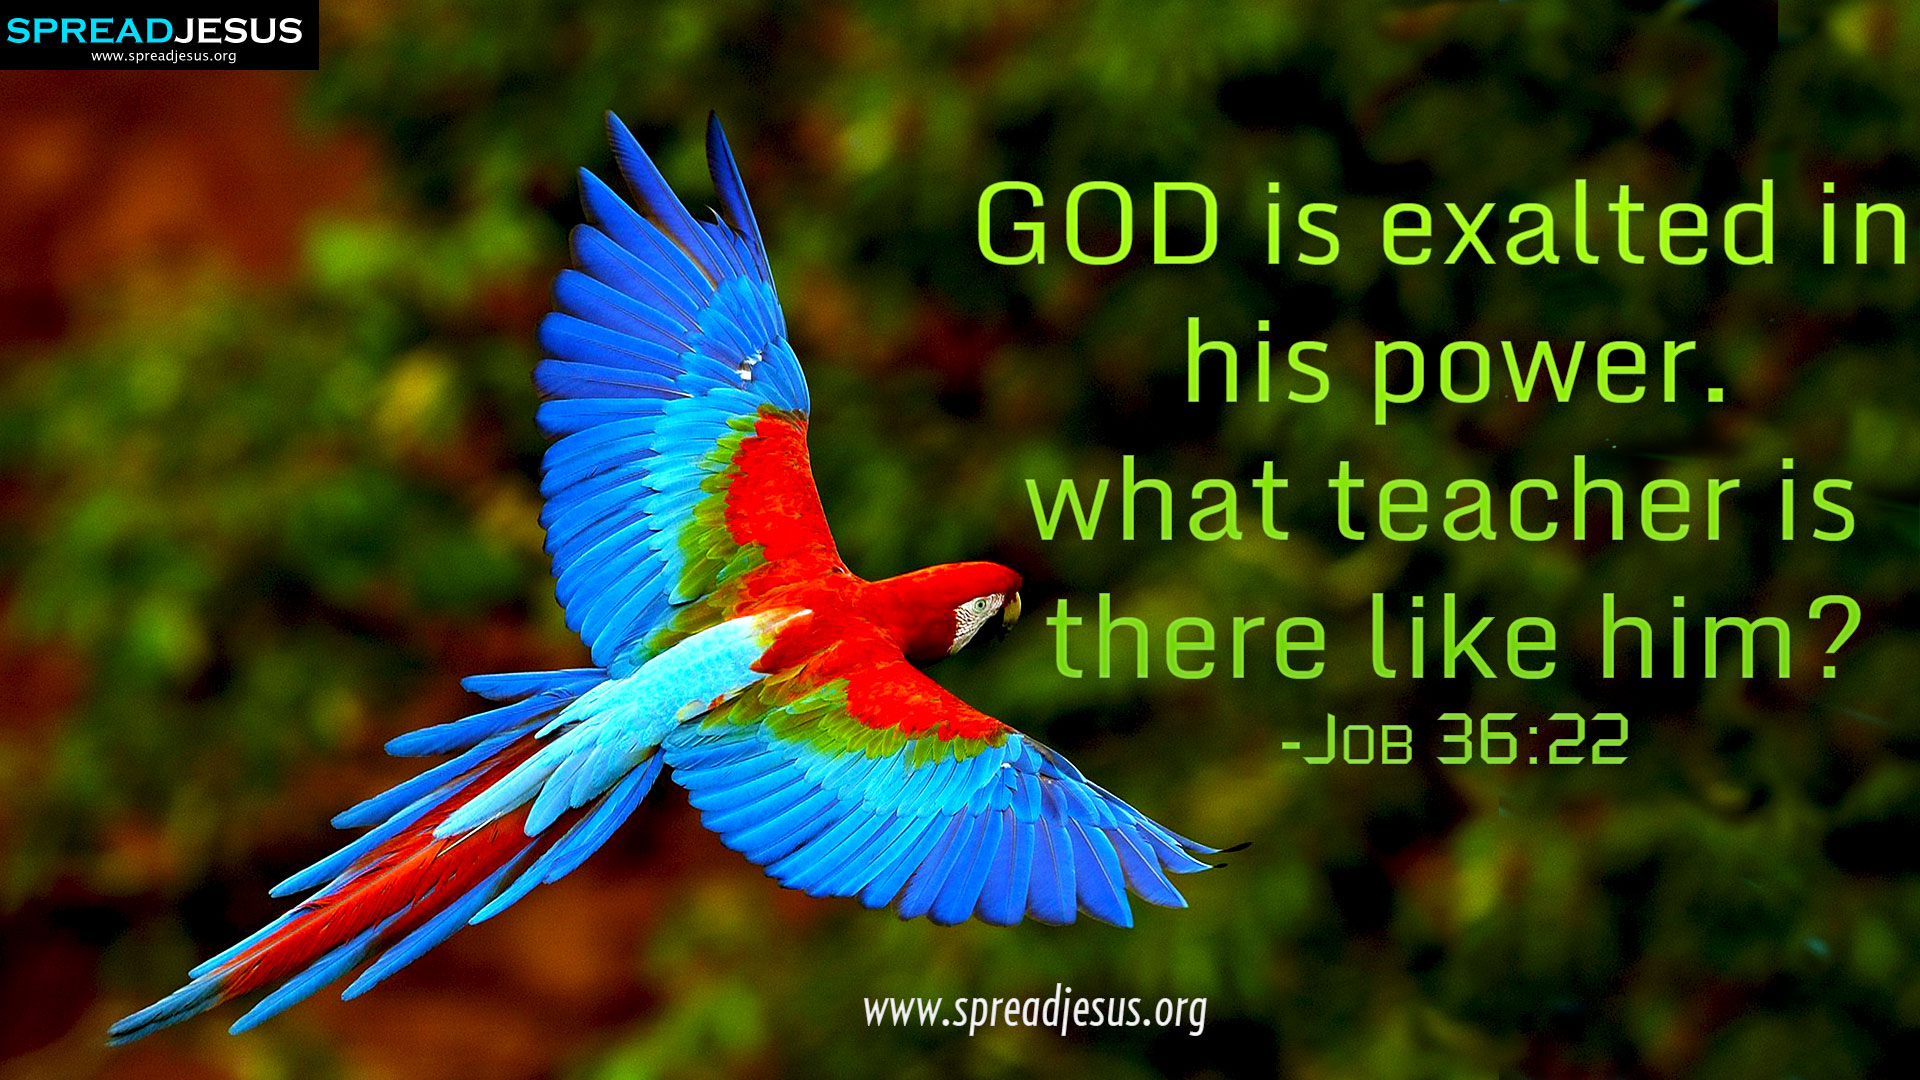 CHRISTIAN HD WALLPAPERS: HOLY BIBLE QUOTES : Job 36:22-GOD is exalted in his power. what teacher is there like him? -Job 36:22